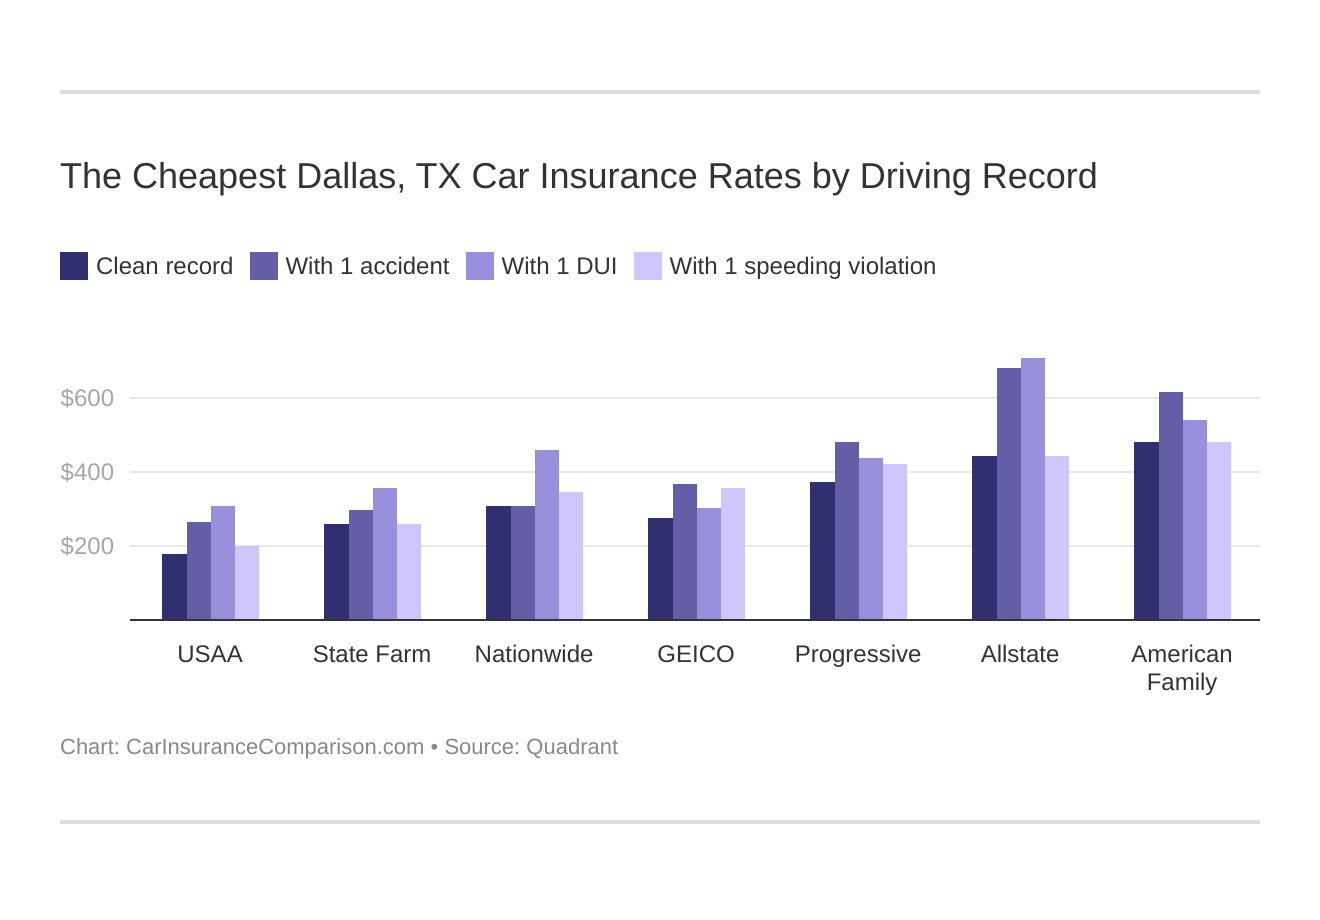 The Cheapest Dallas, TX Car Insurance Rates by Driving Record